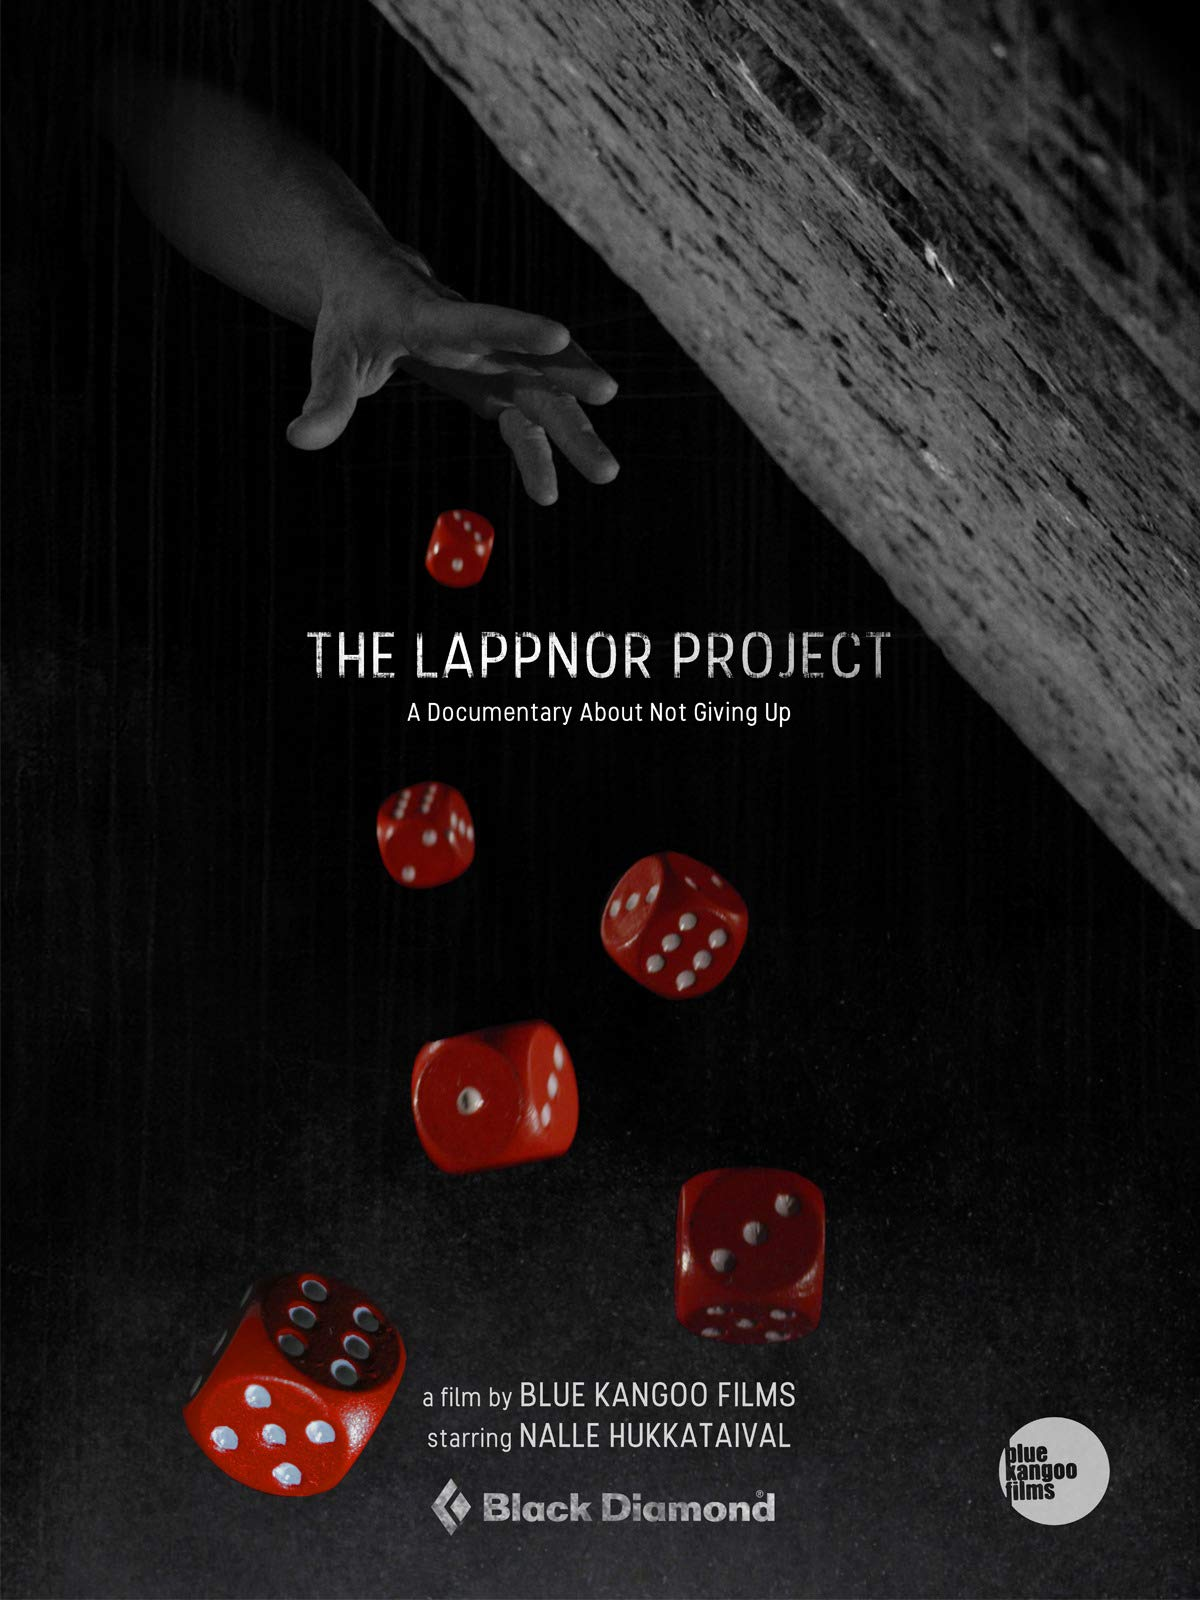 The Lappnor Project